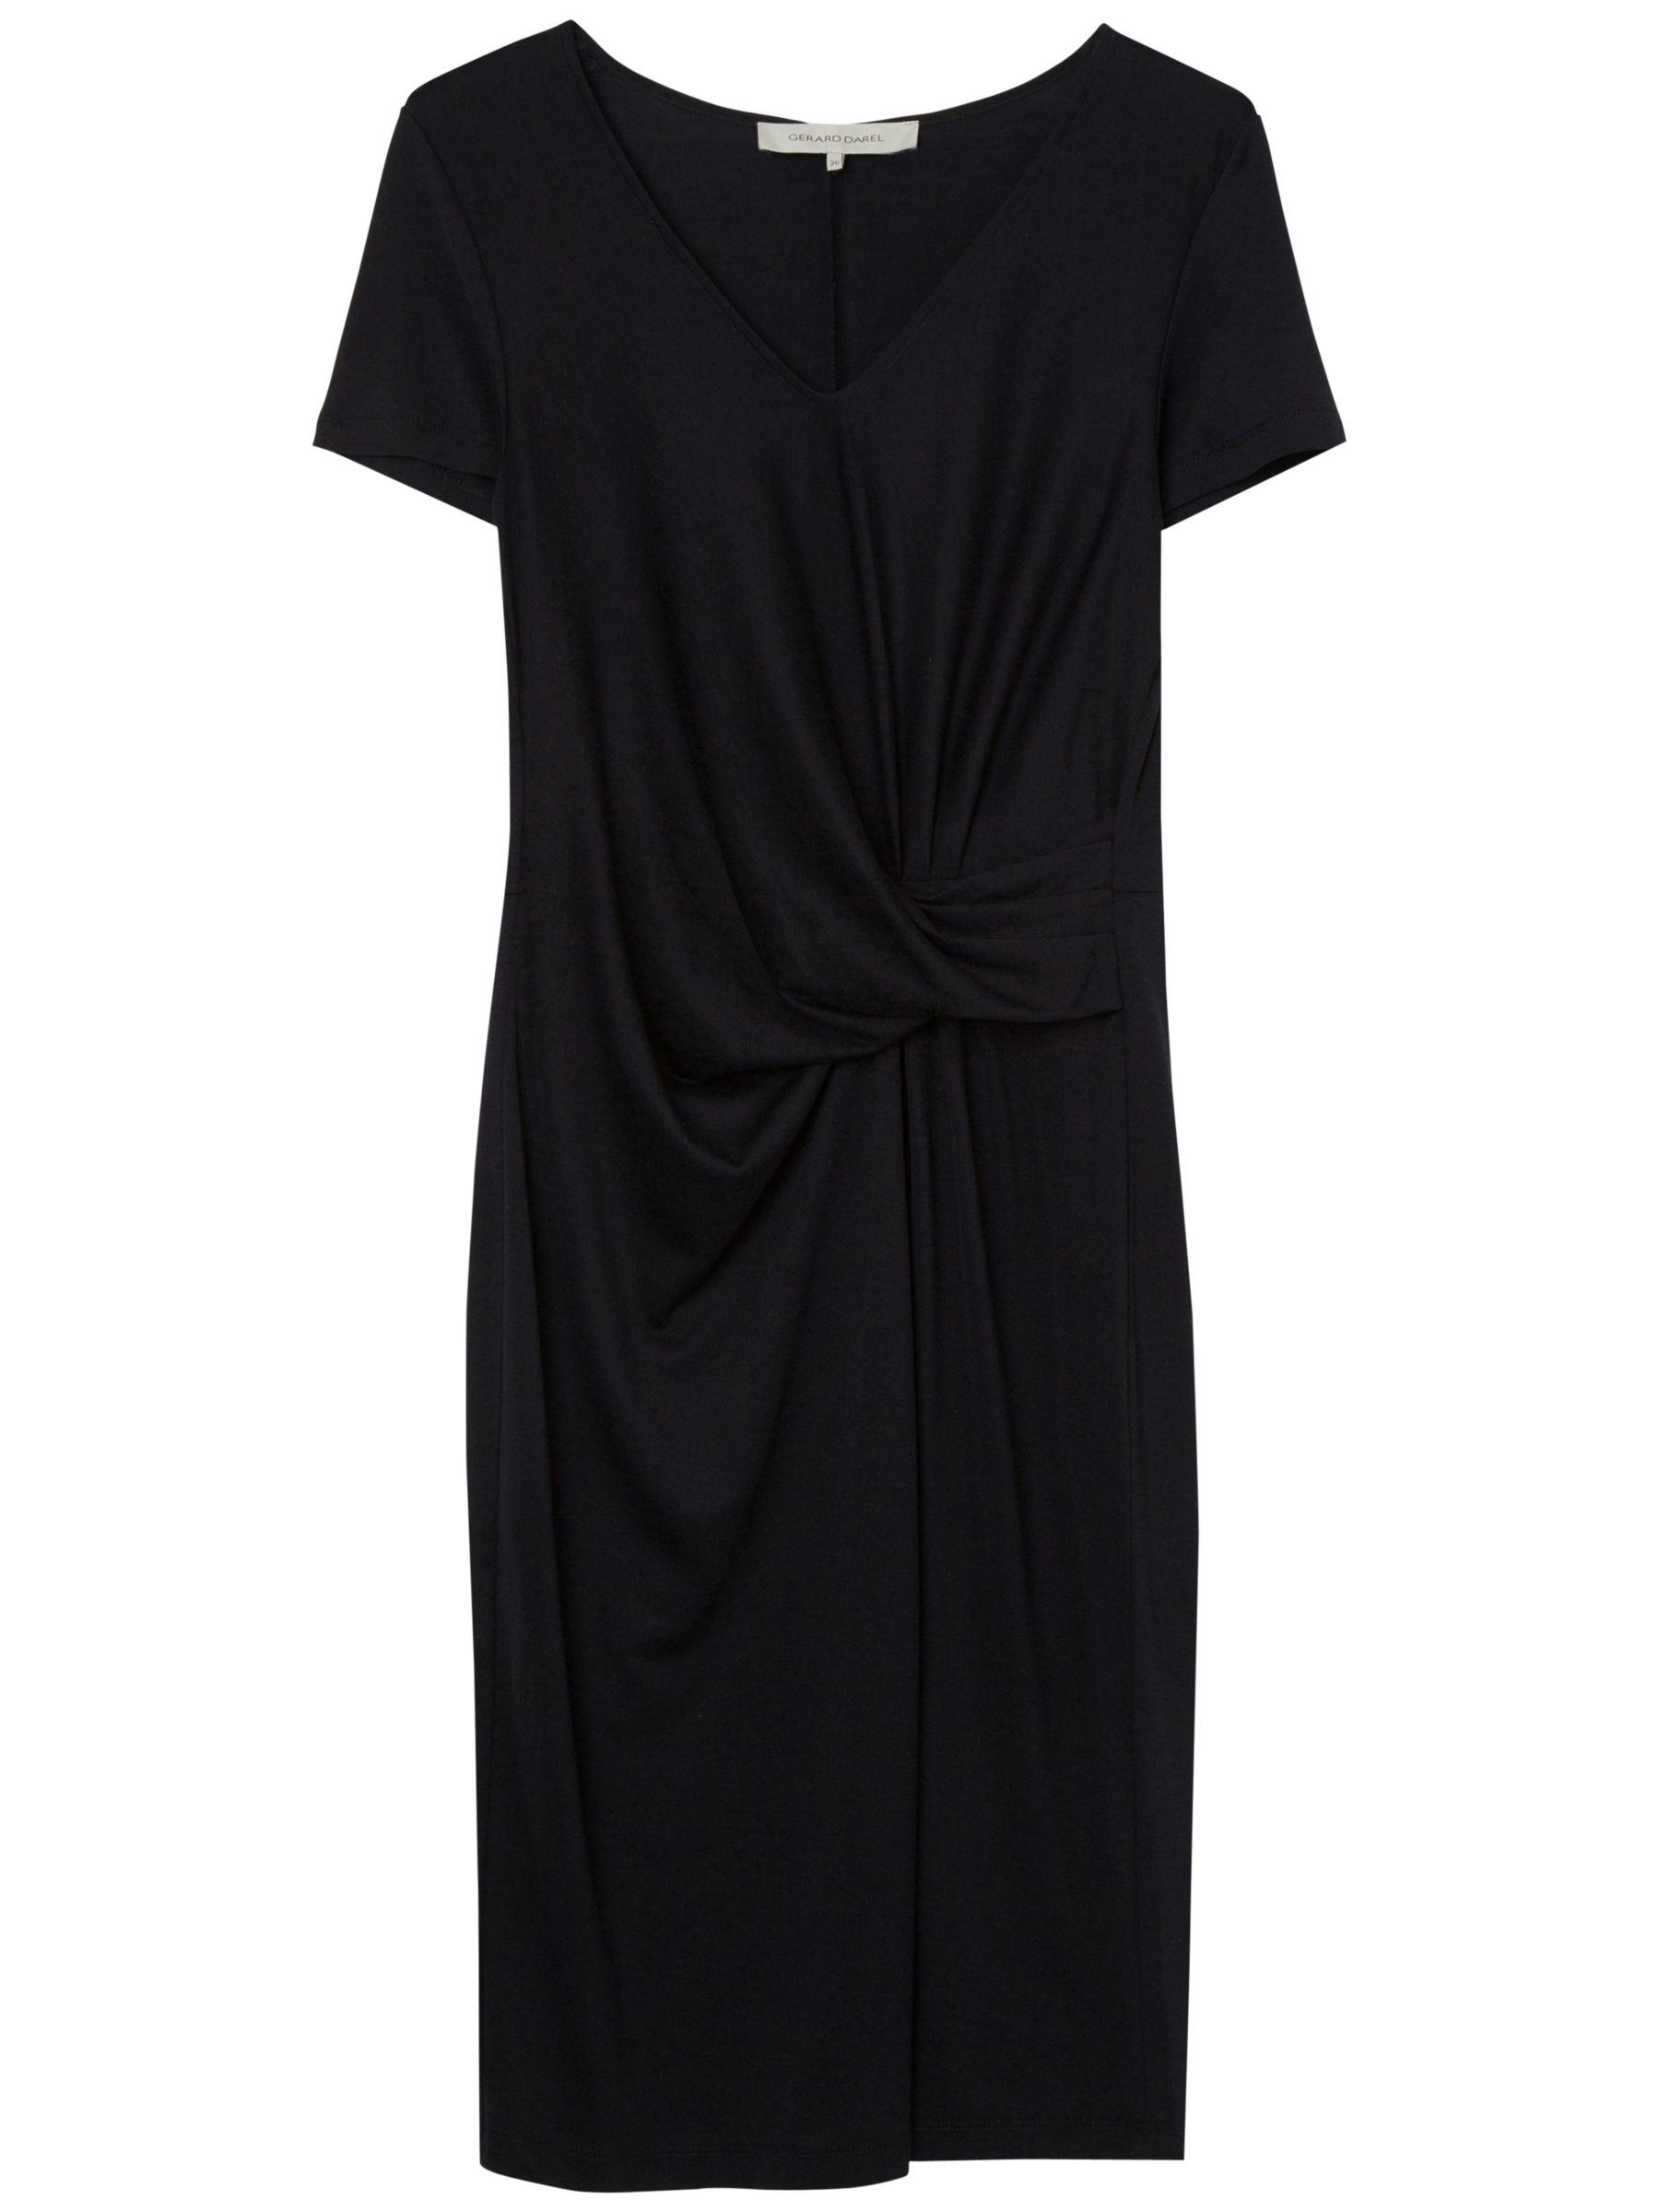 gerard darel auline dress black, gerard, darel, auline, dress, black, gerard darel, 12-14|10-12|14-16|8-10, women, womens dresses, 1903271